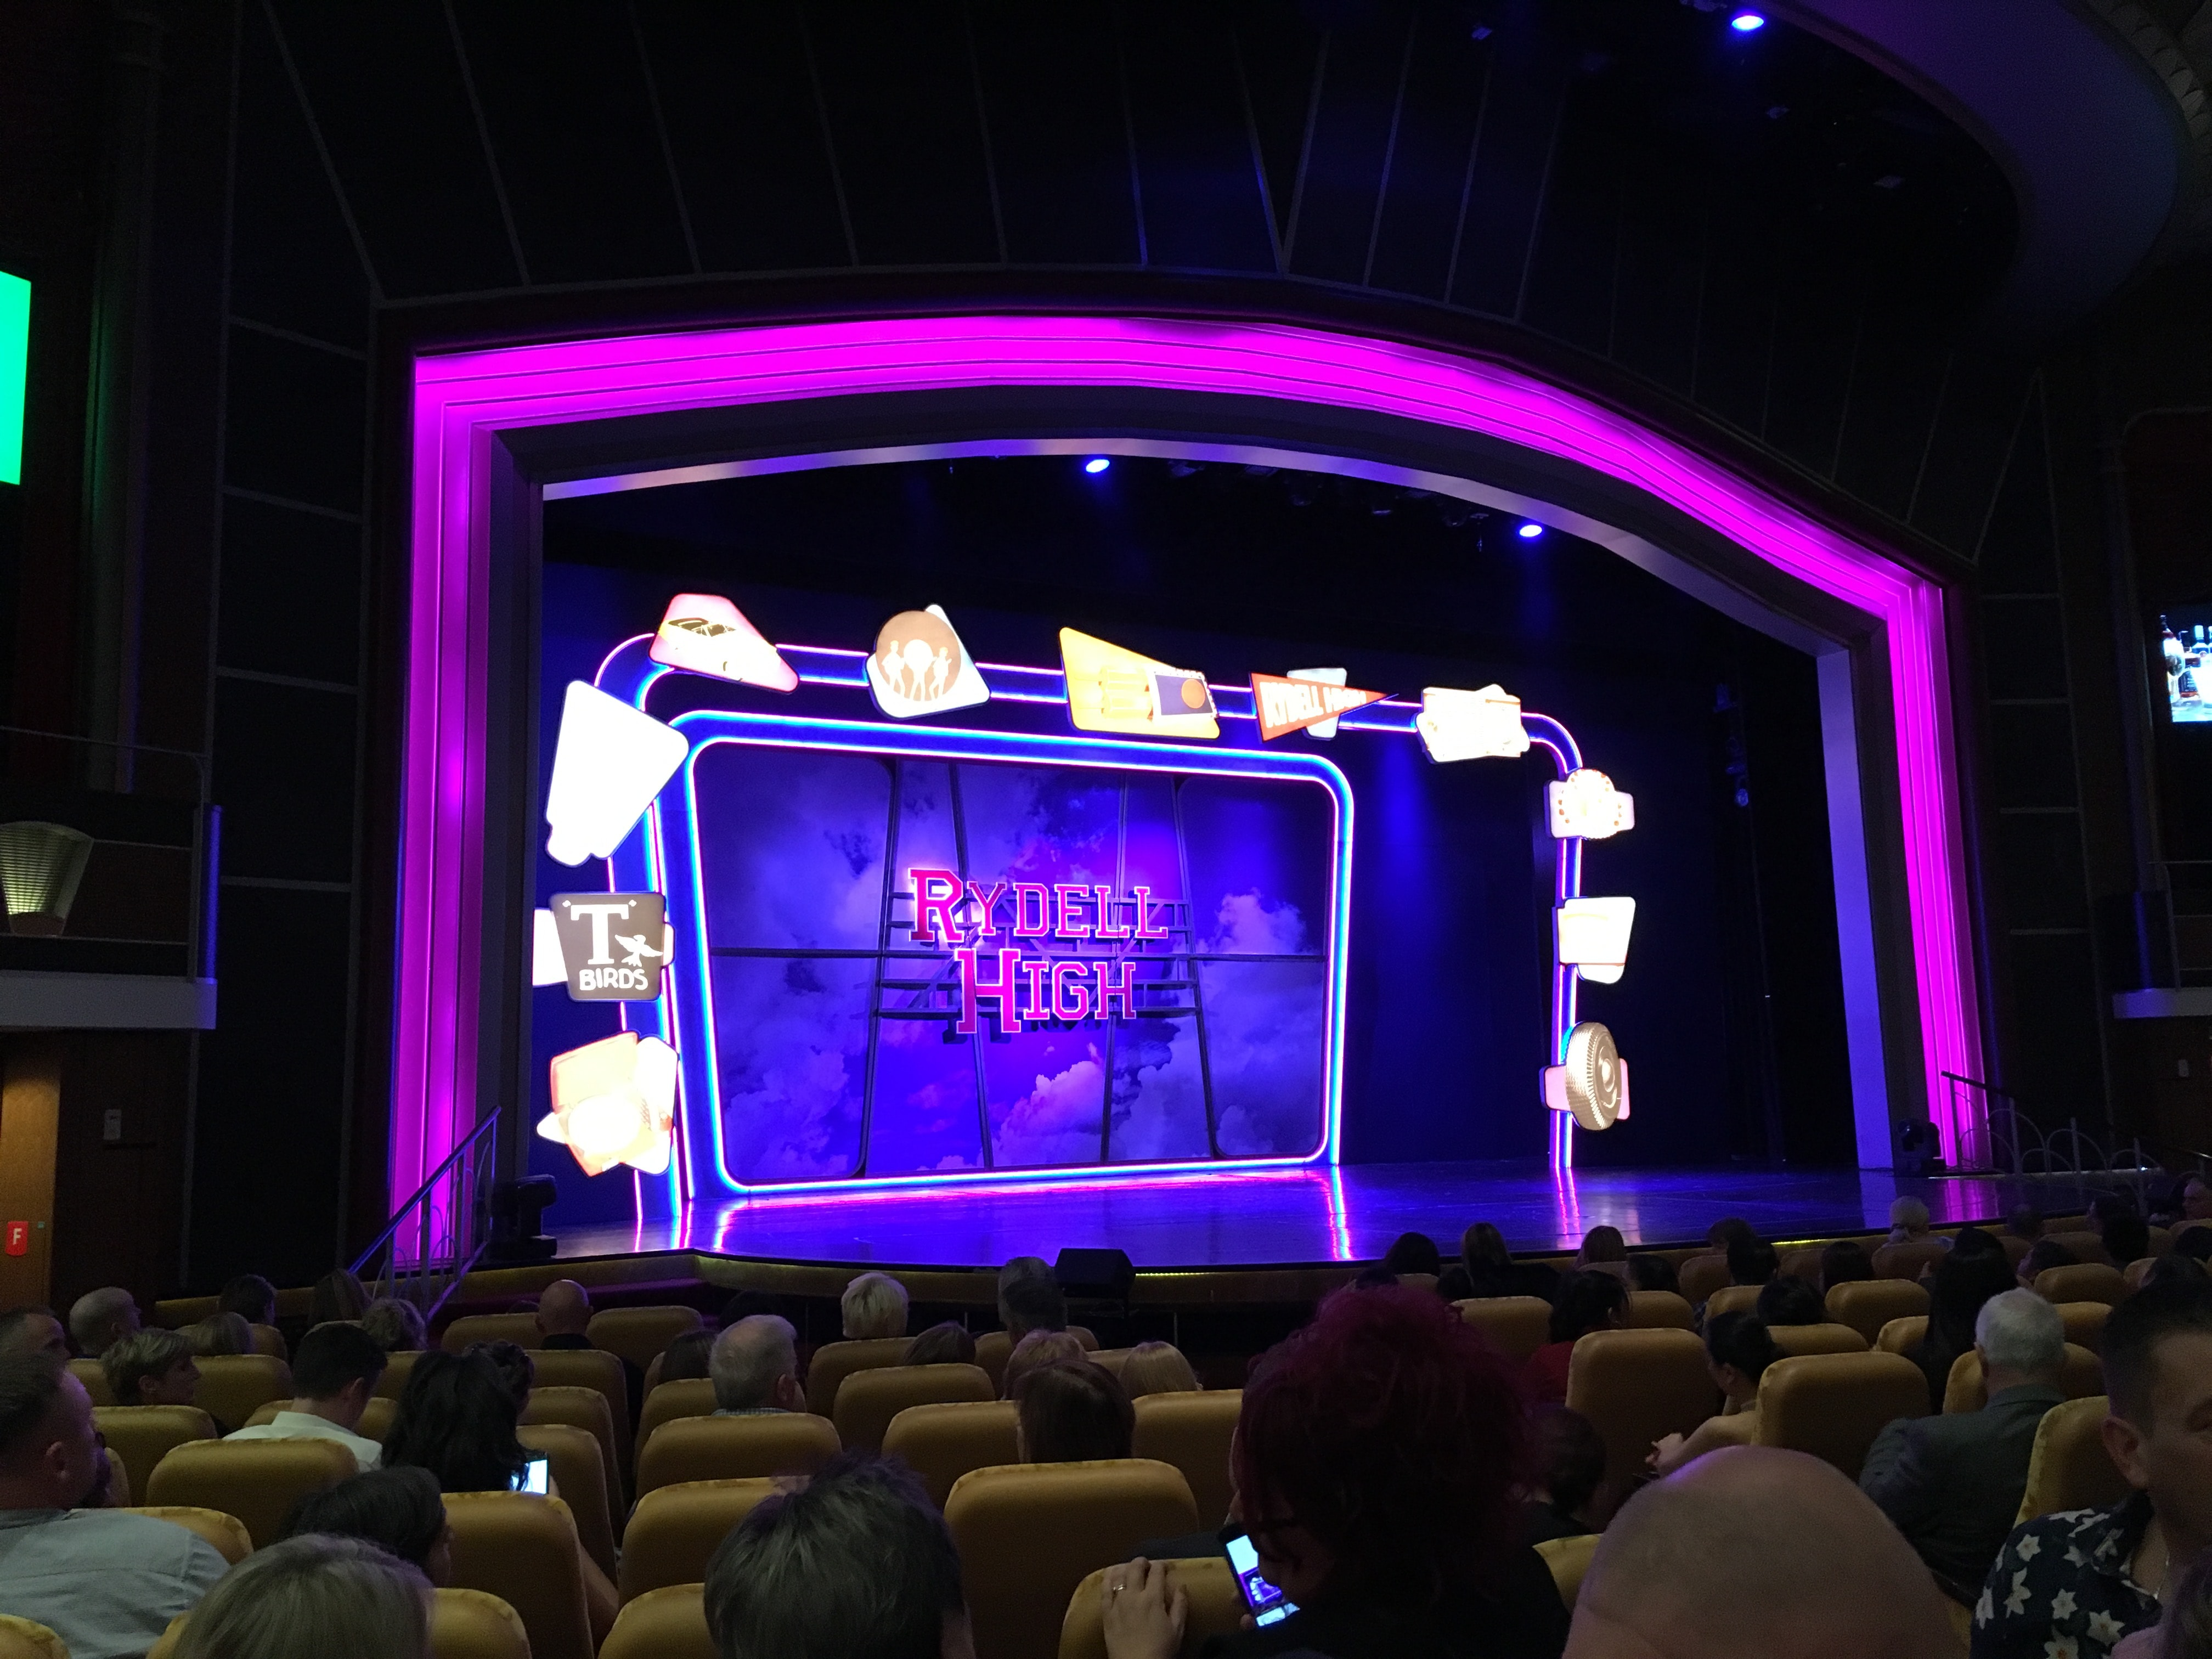 royal caribbean independence of the seas grease musical rydell high